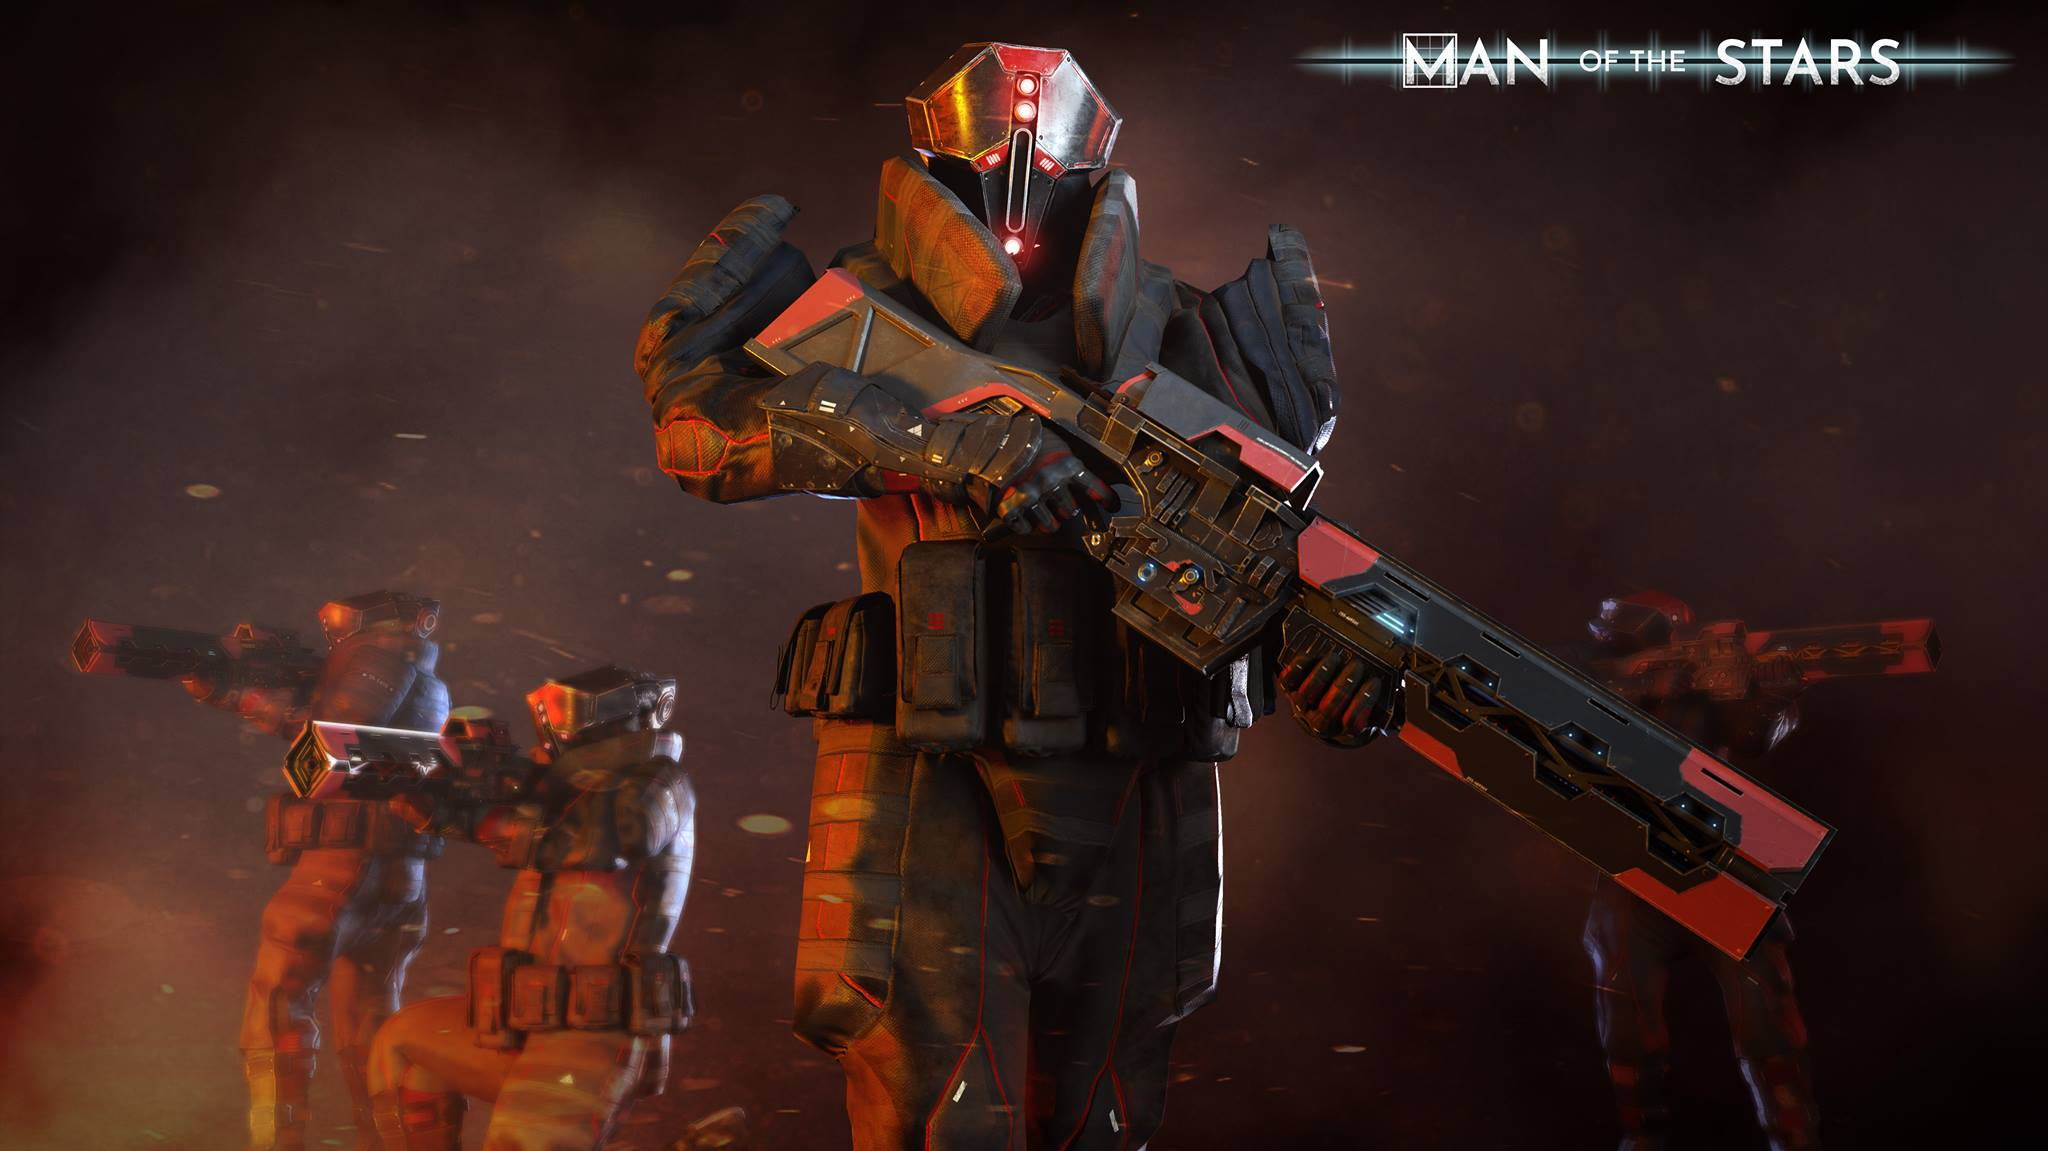 Survival sci-fi MMO Man Of The Stars gets Kickstarter campaign